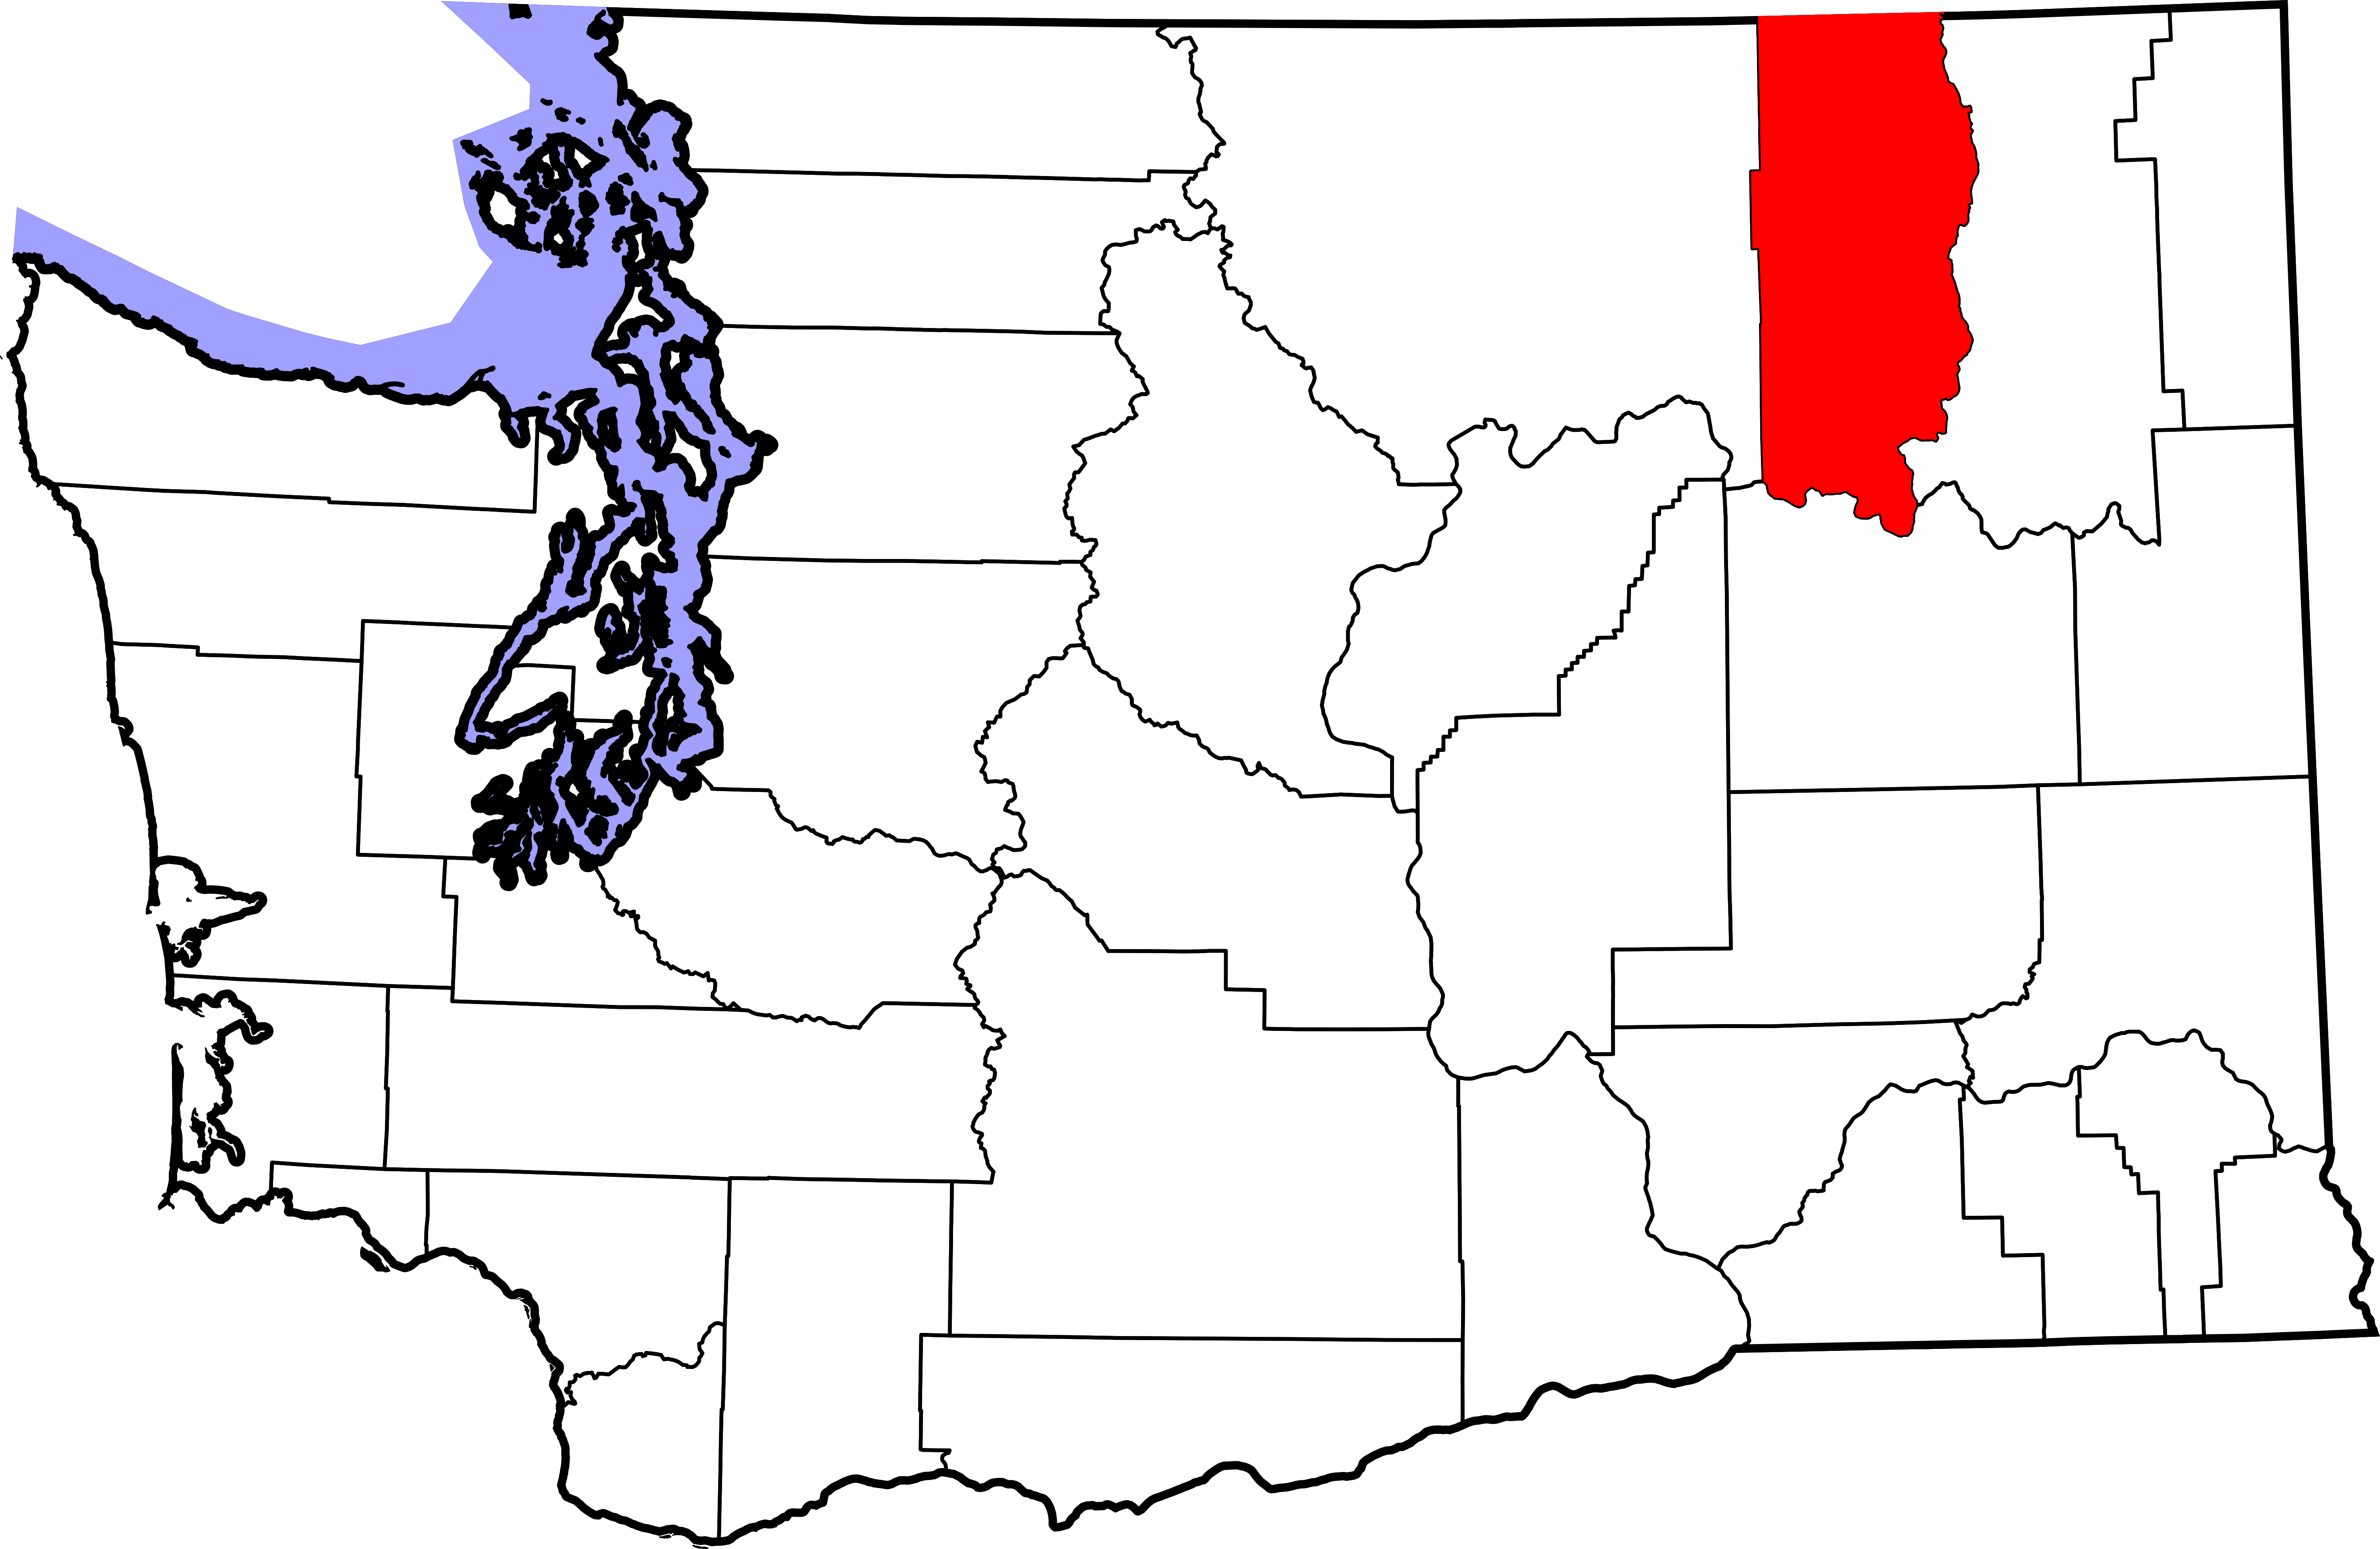 Washington state outline png. File map of highlighting